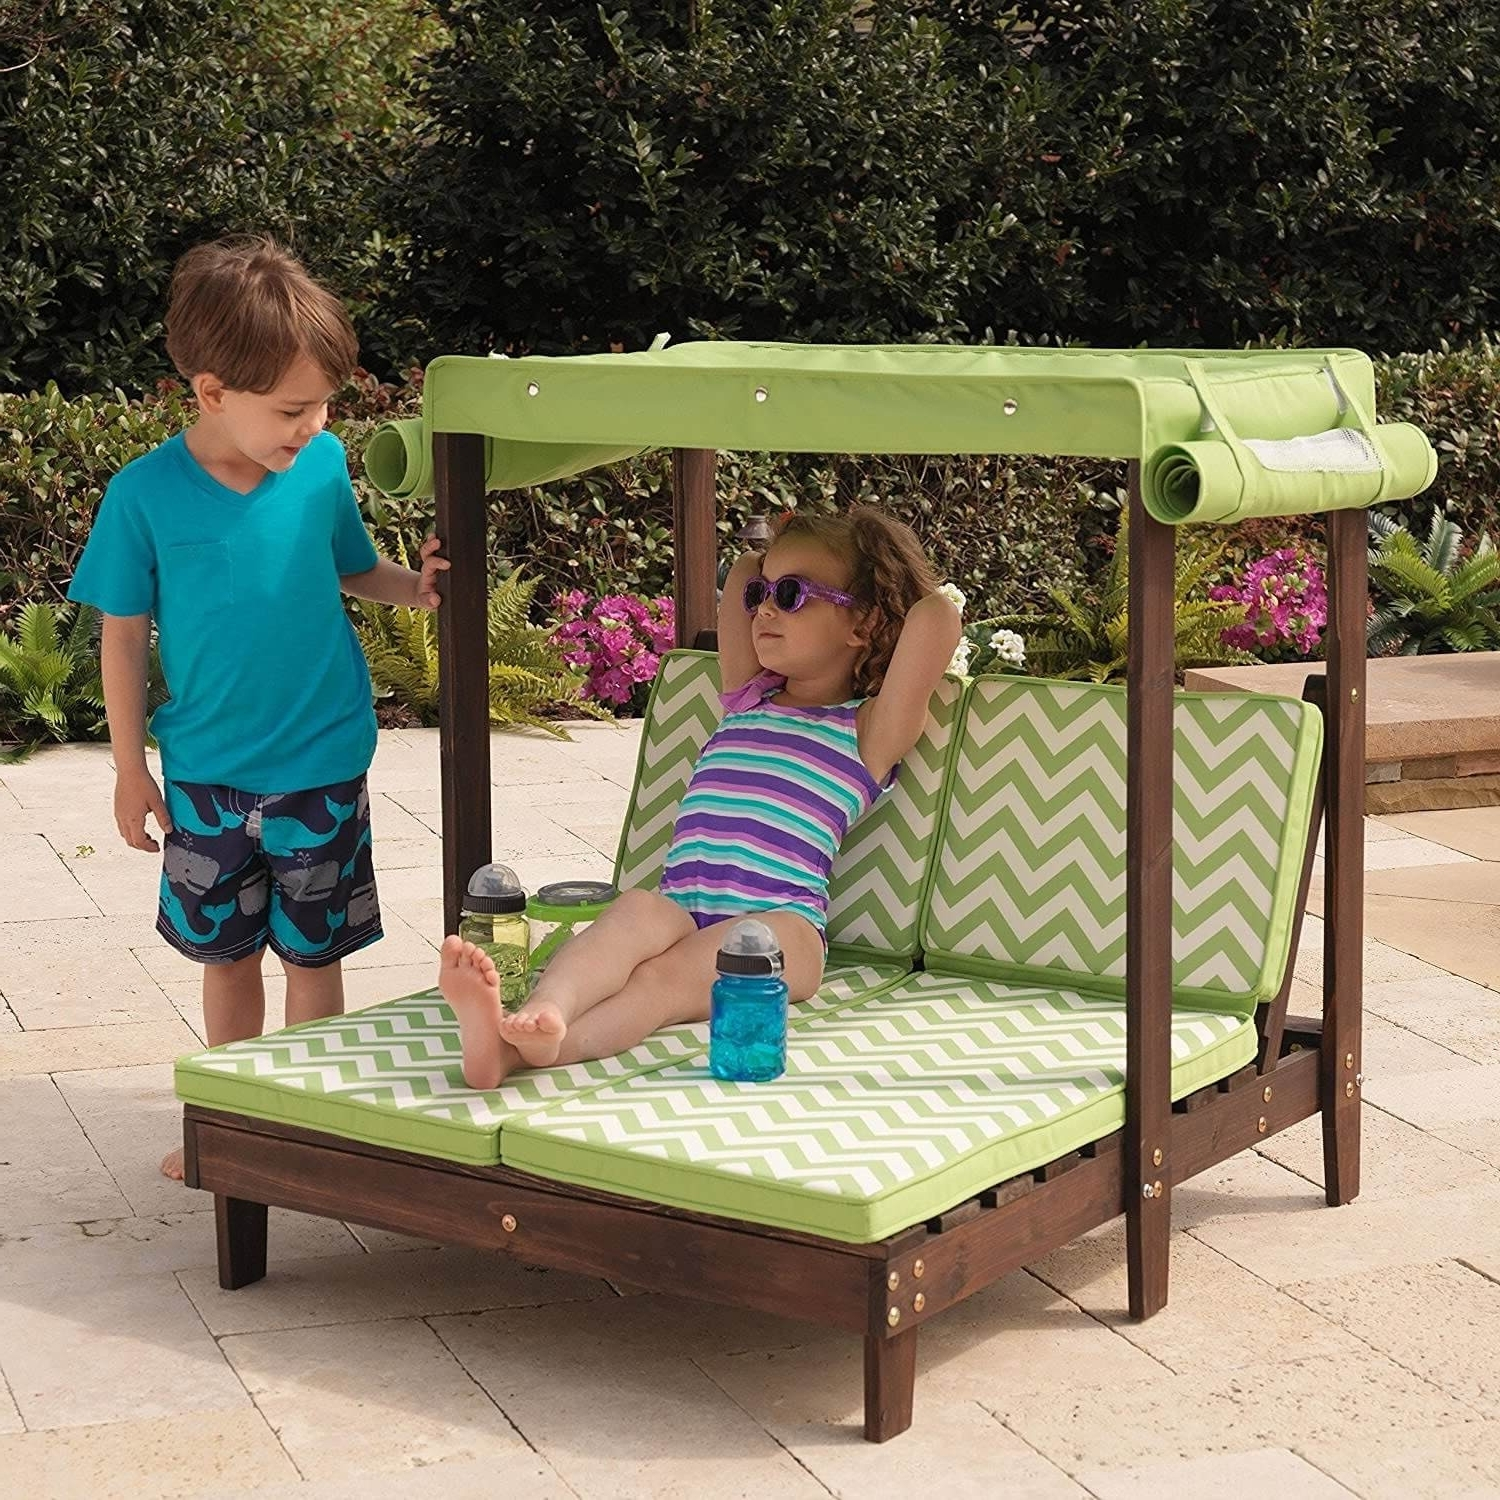 Preferred Outdoor : Folding Outdoor Lounge Chairs Outdoor Double Chaise With Regard To Children's Outdoor Chaise Lounge Chairs (View 13 of 15)